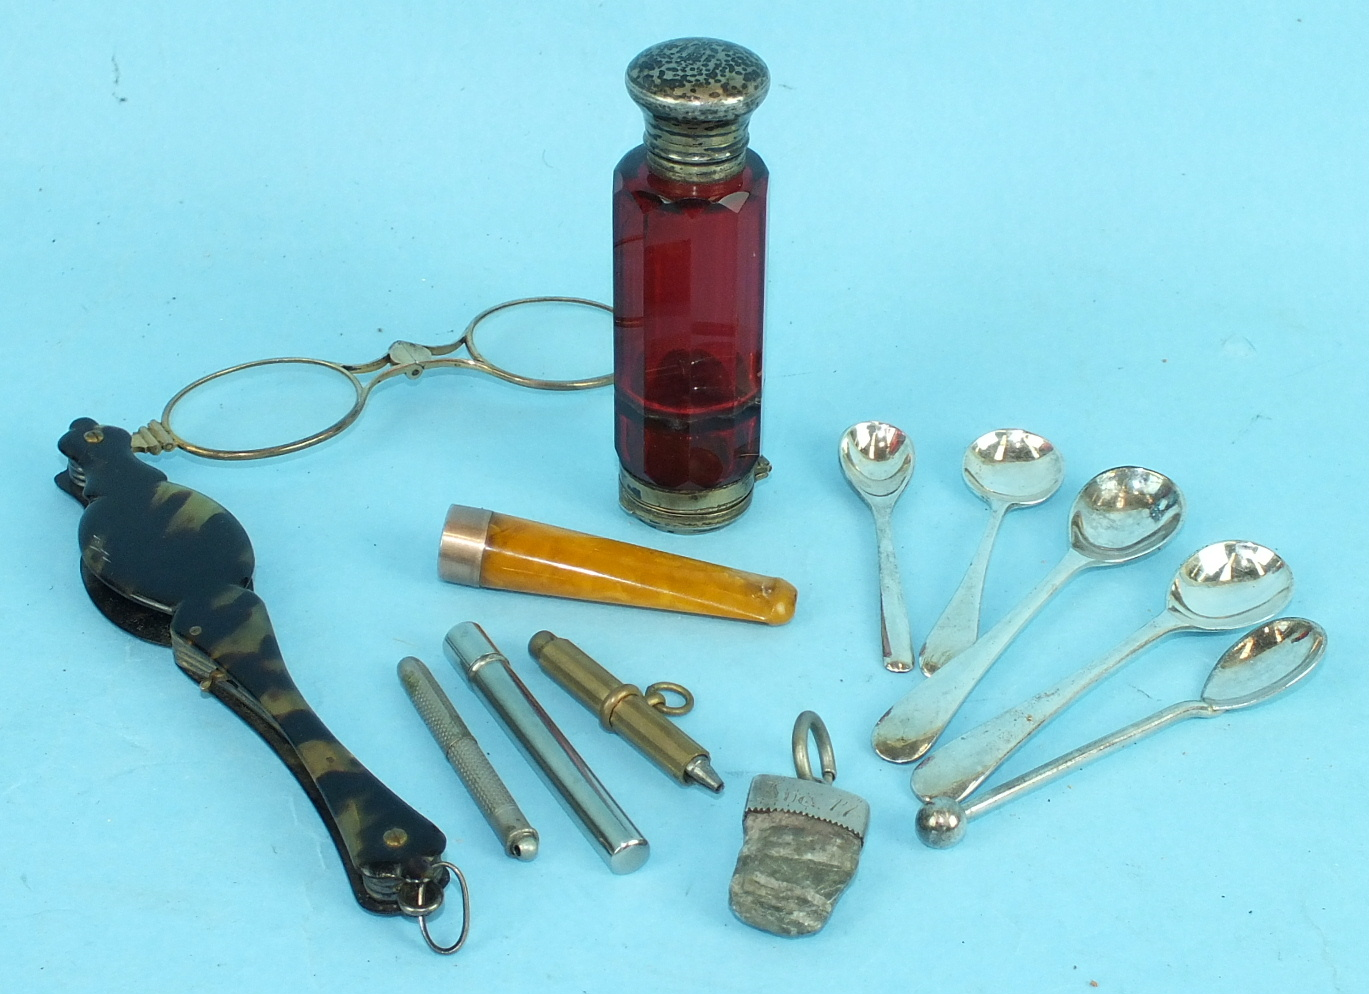 A 19th century ruby glass double-ended scent bottle, a pair of tortoiseshell-cased gilt lorgnettes